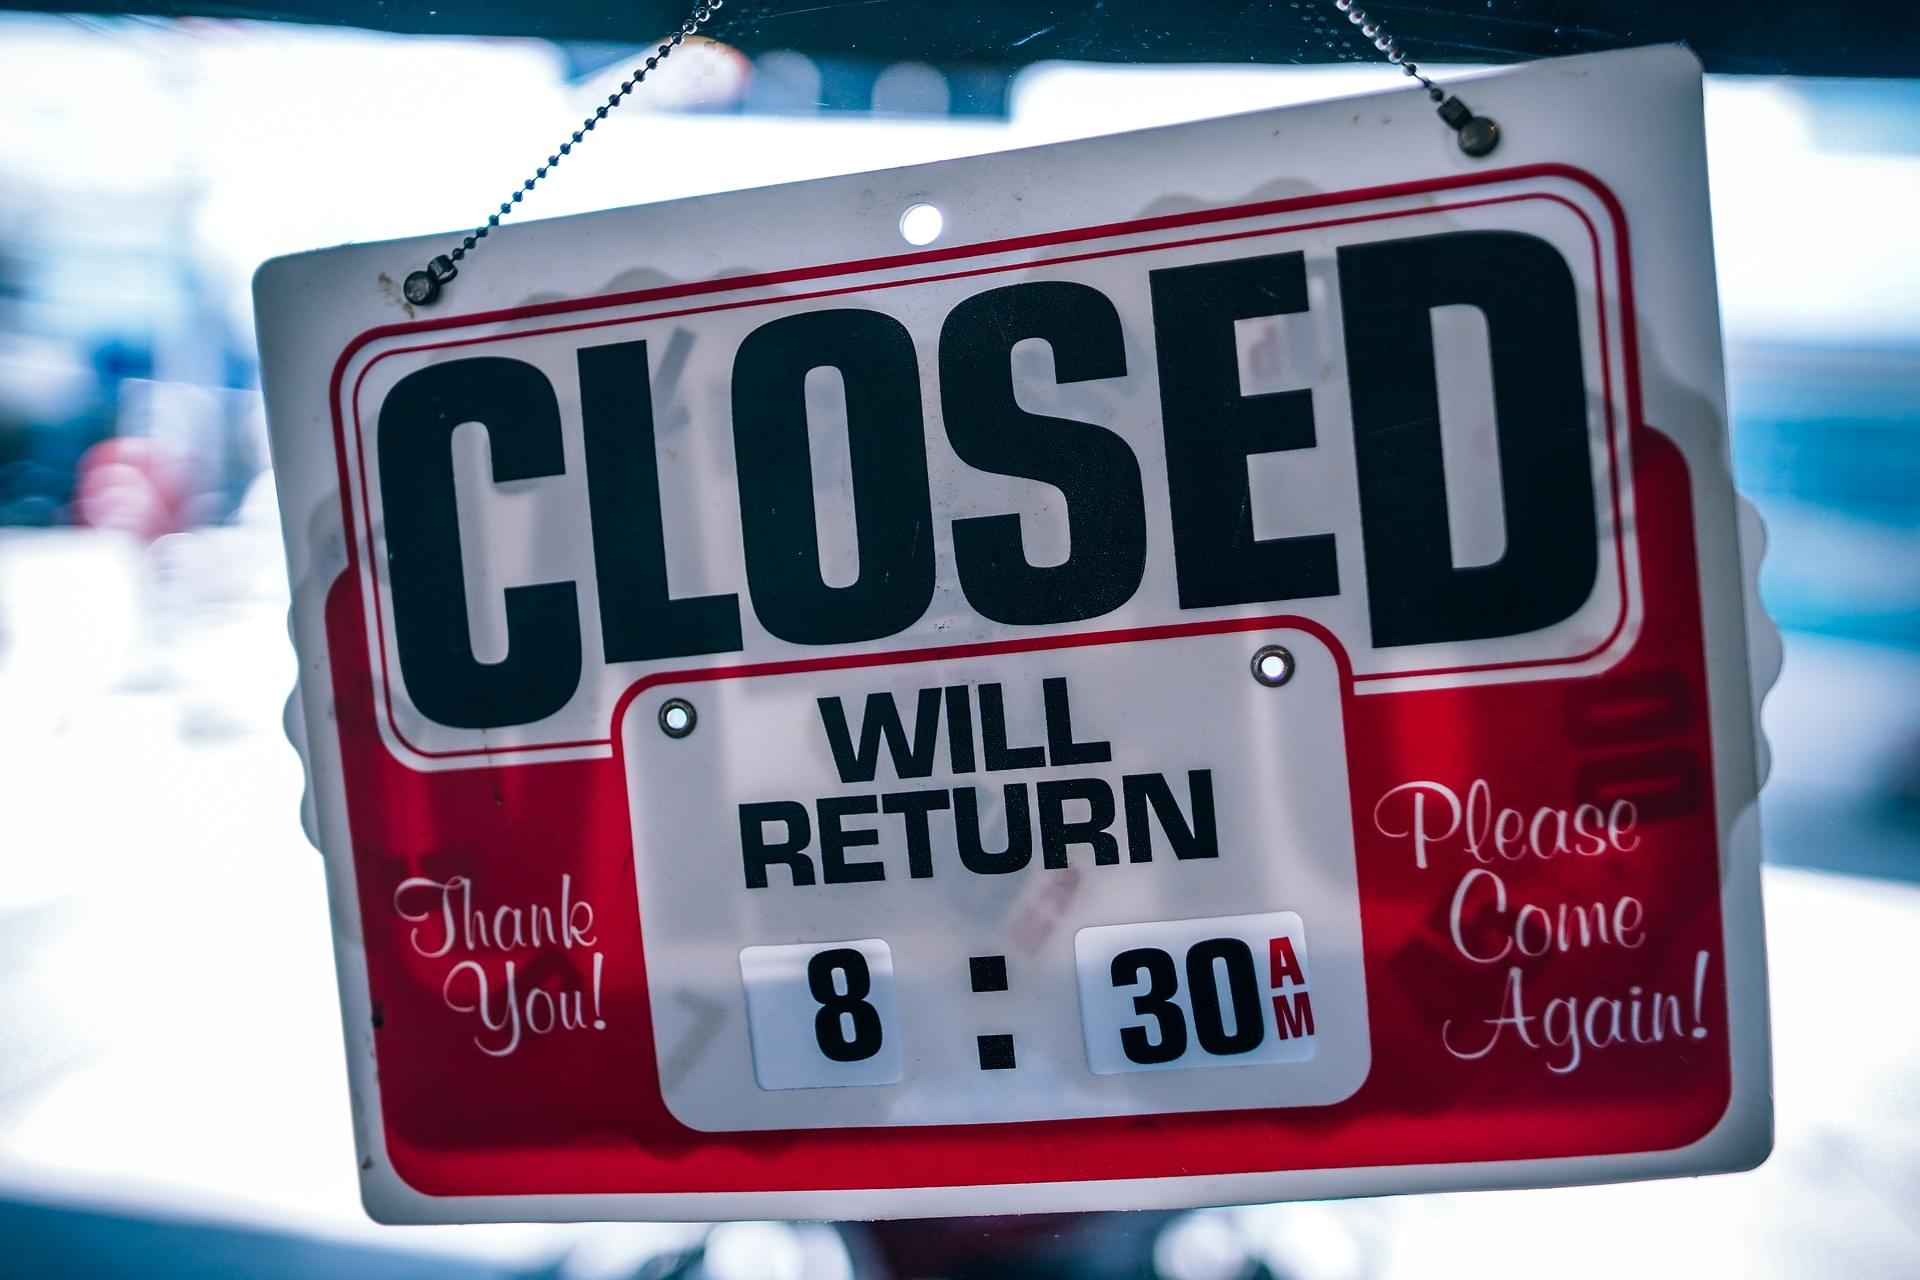 Another Scotty's Brewhouse Has Closed Leaving Just One In The Indy Area